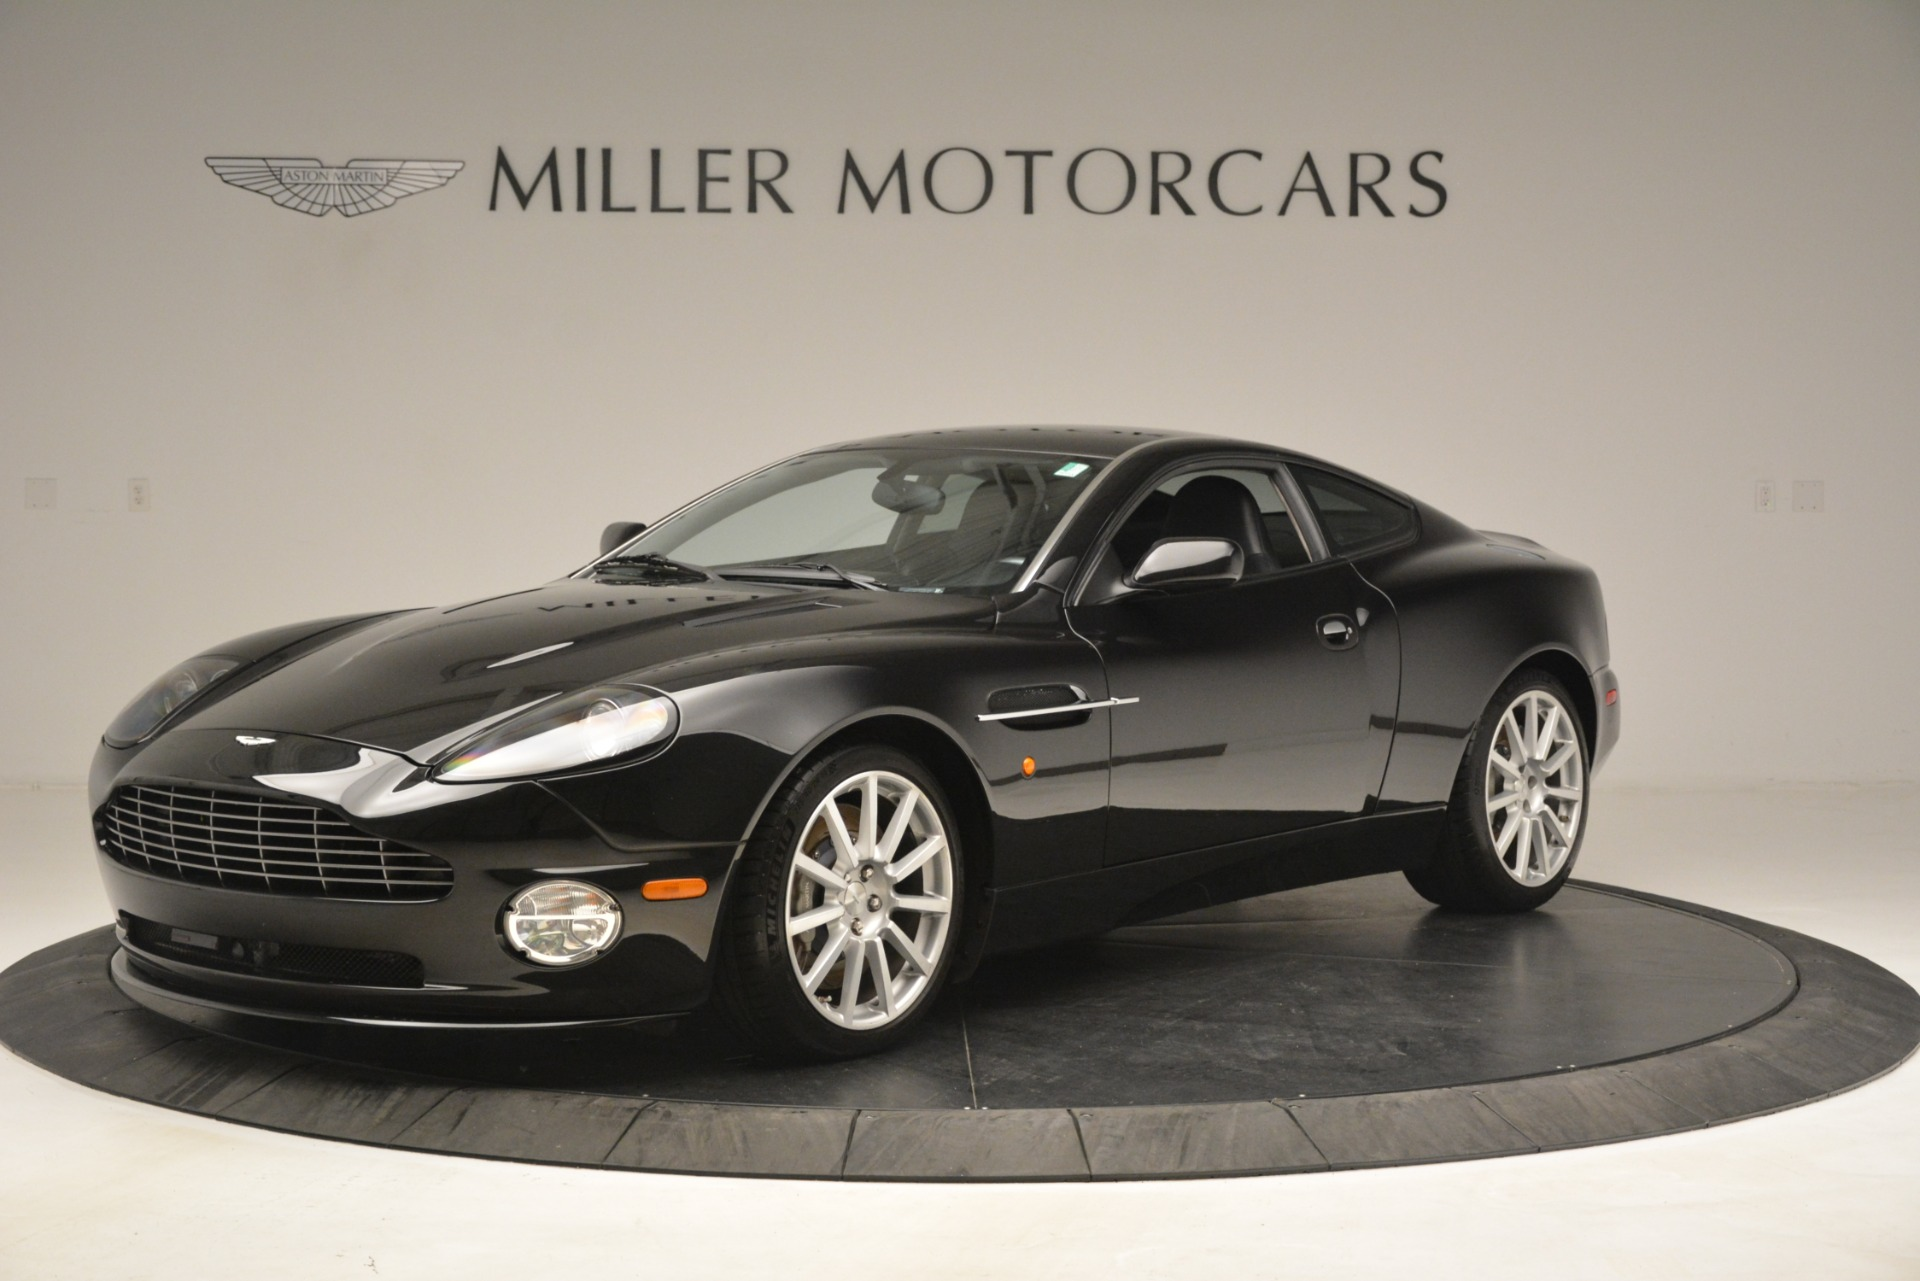 Used 2005 Aston Martin V12 Vanquish S Coupe for sale Sold at Maserati of Westport in Westport CT 06880 1